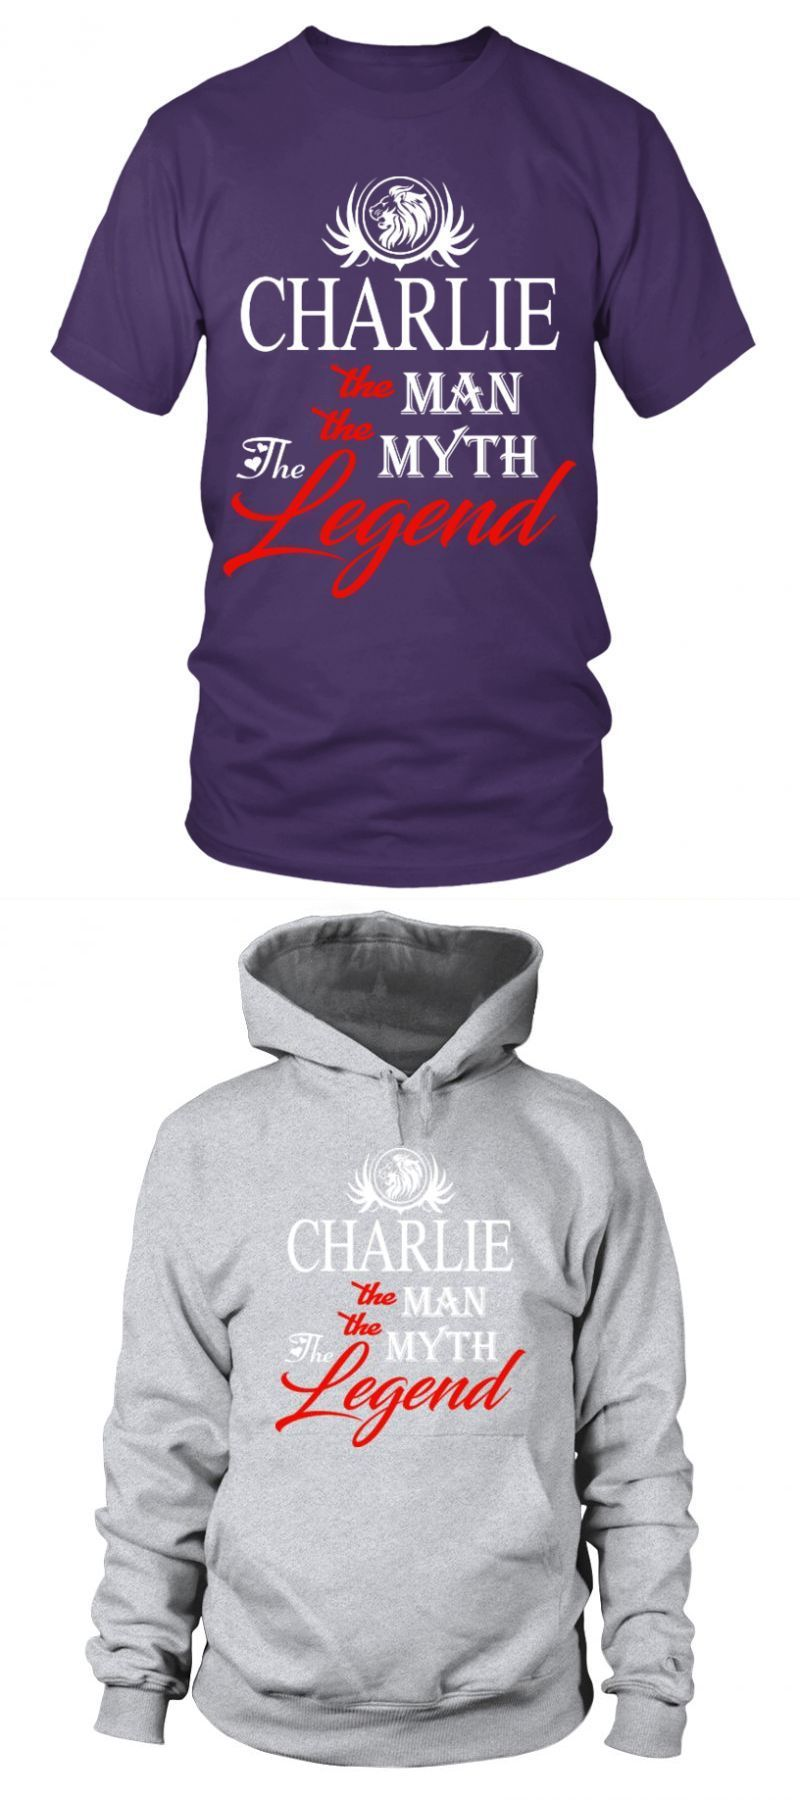 6740d846f Customised t-shirt for men with charli charlie the man the myth the legend  0 personalised t-shirt with charli #customised #t-shirt #for #men #with  #charli ...